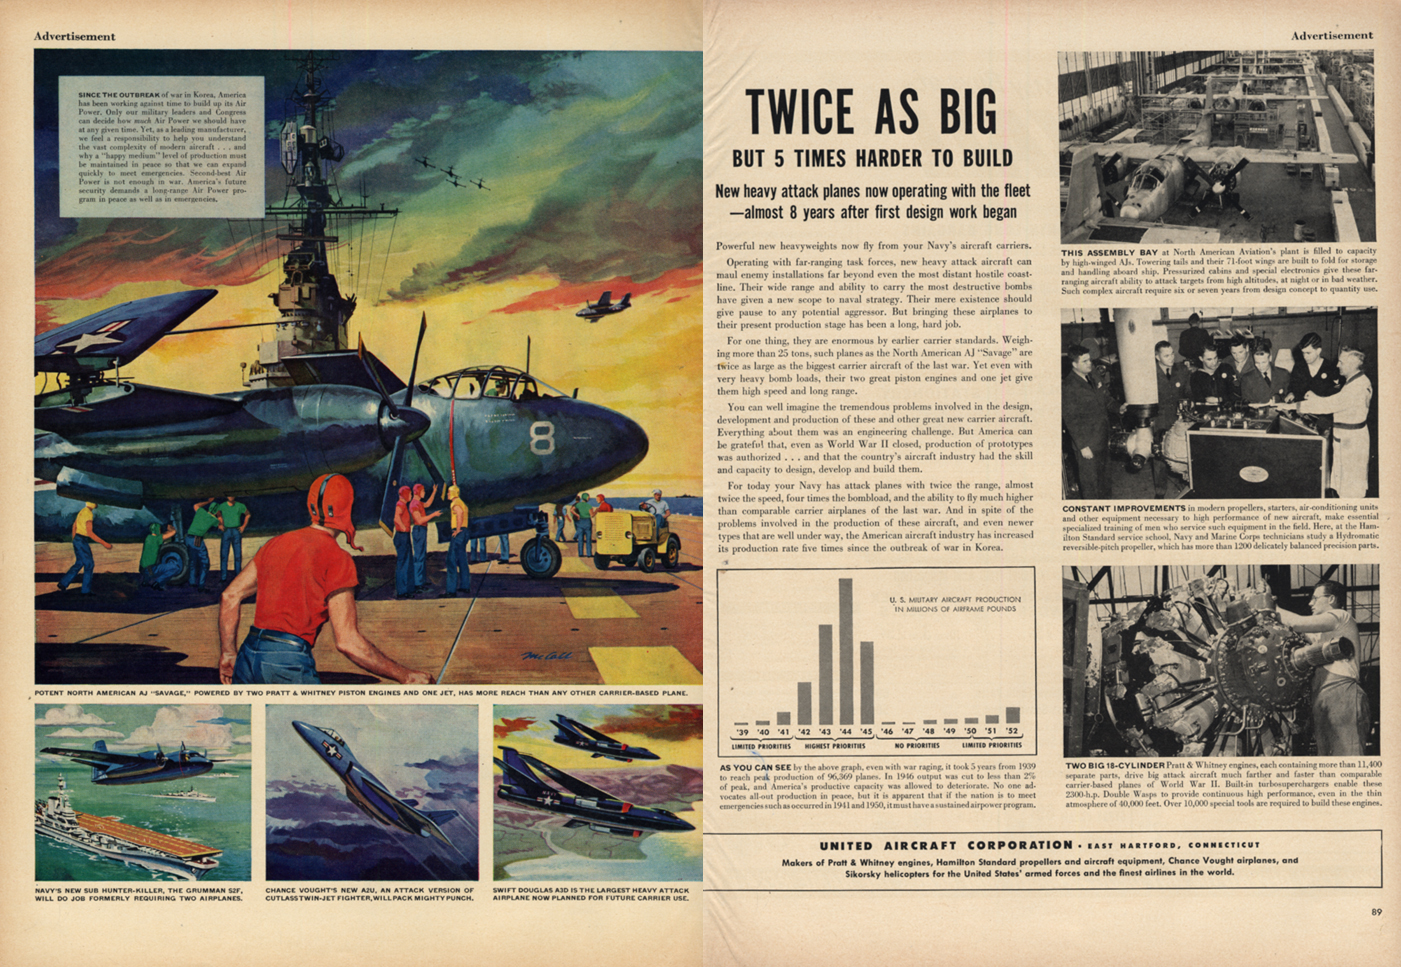 Image for Twice as big 5x harder to build North American AJ Savage United Aircraft ad 1953